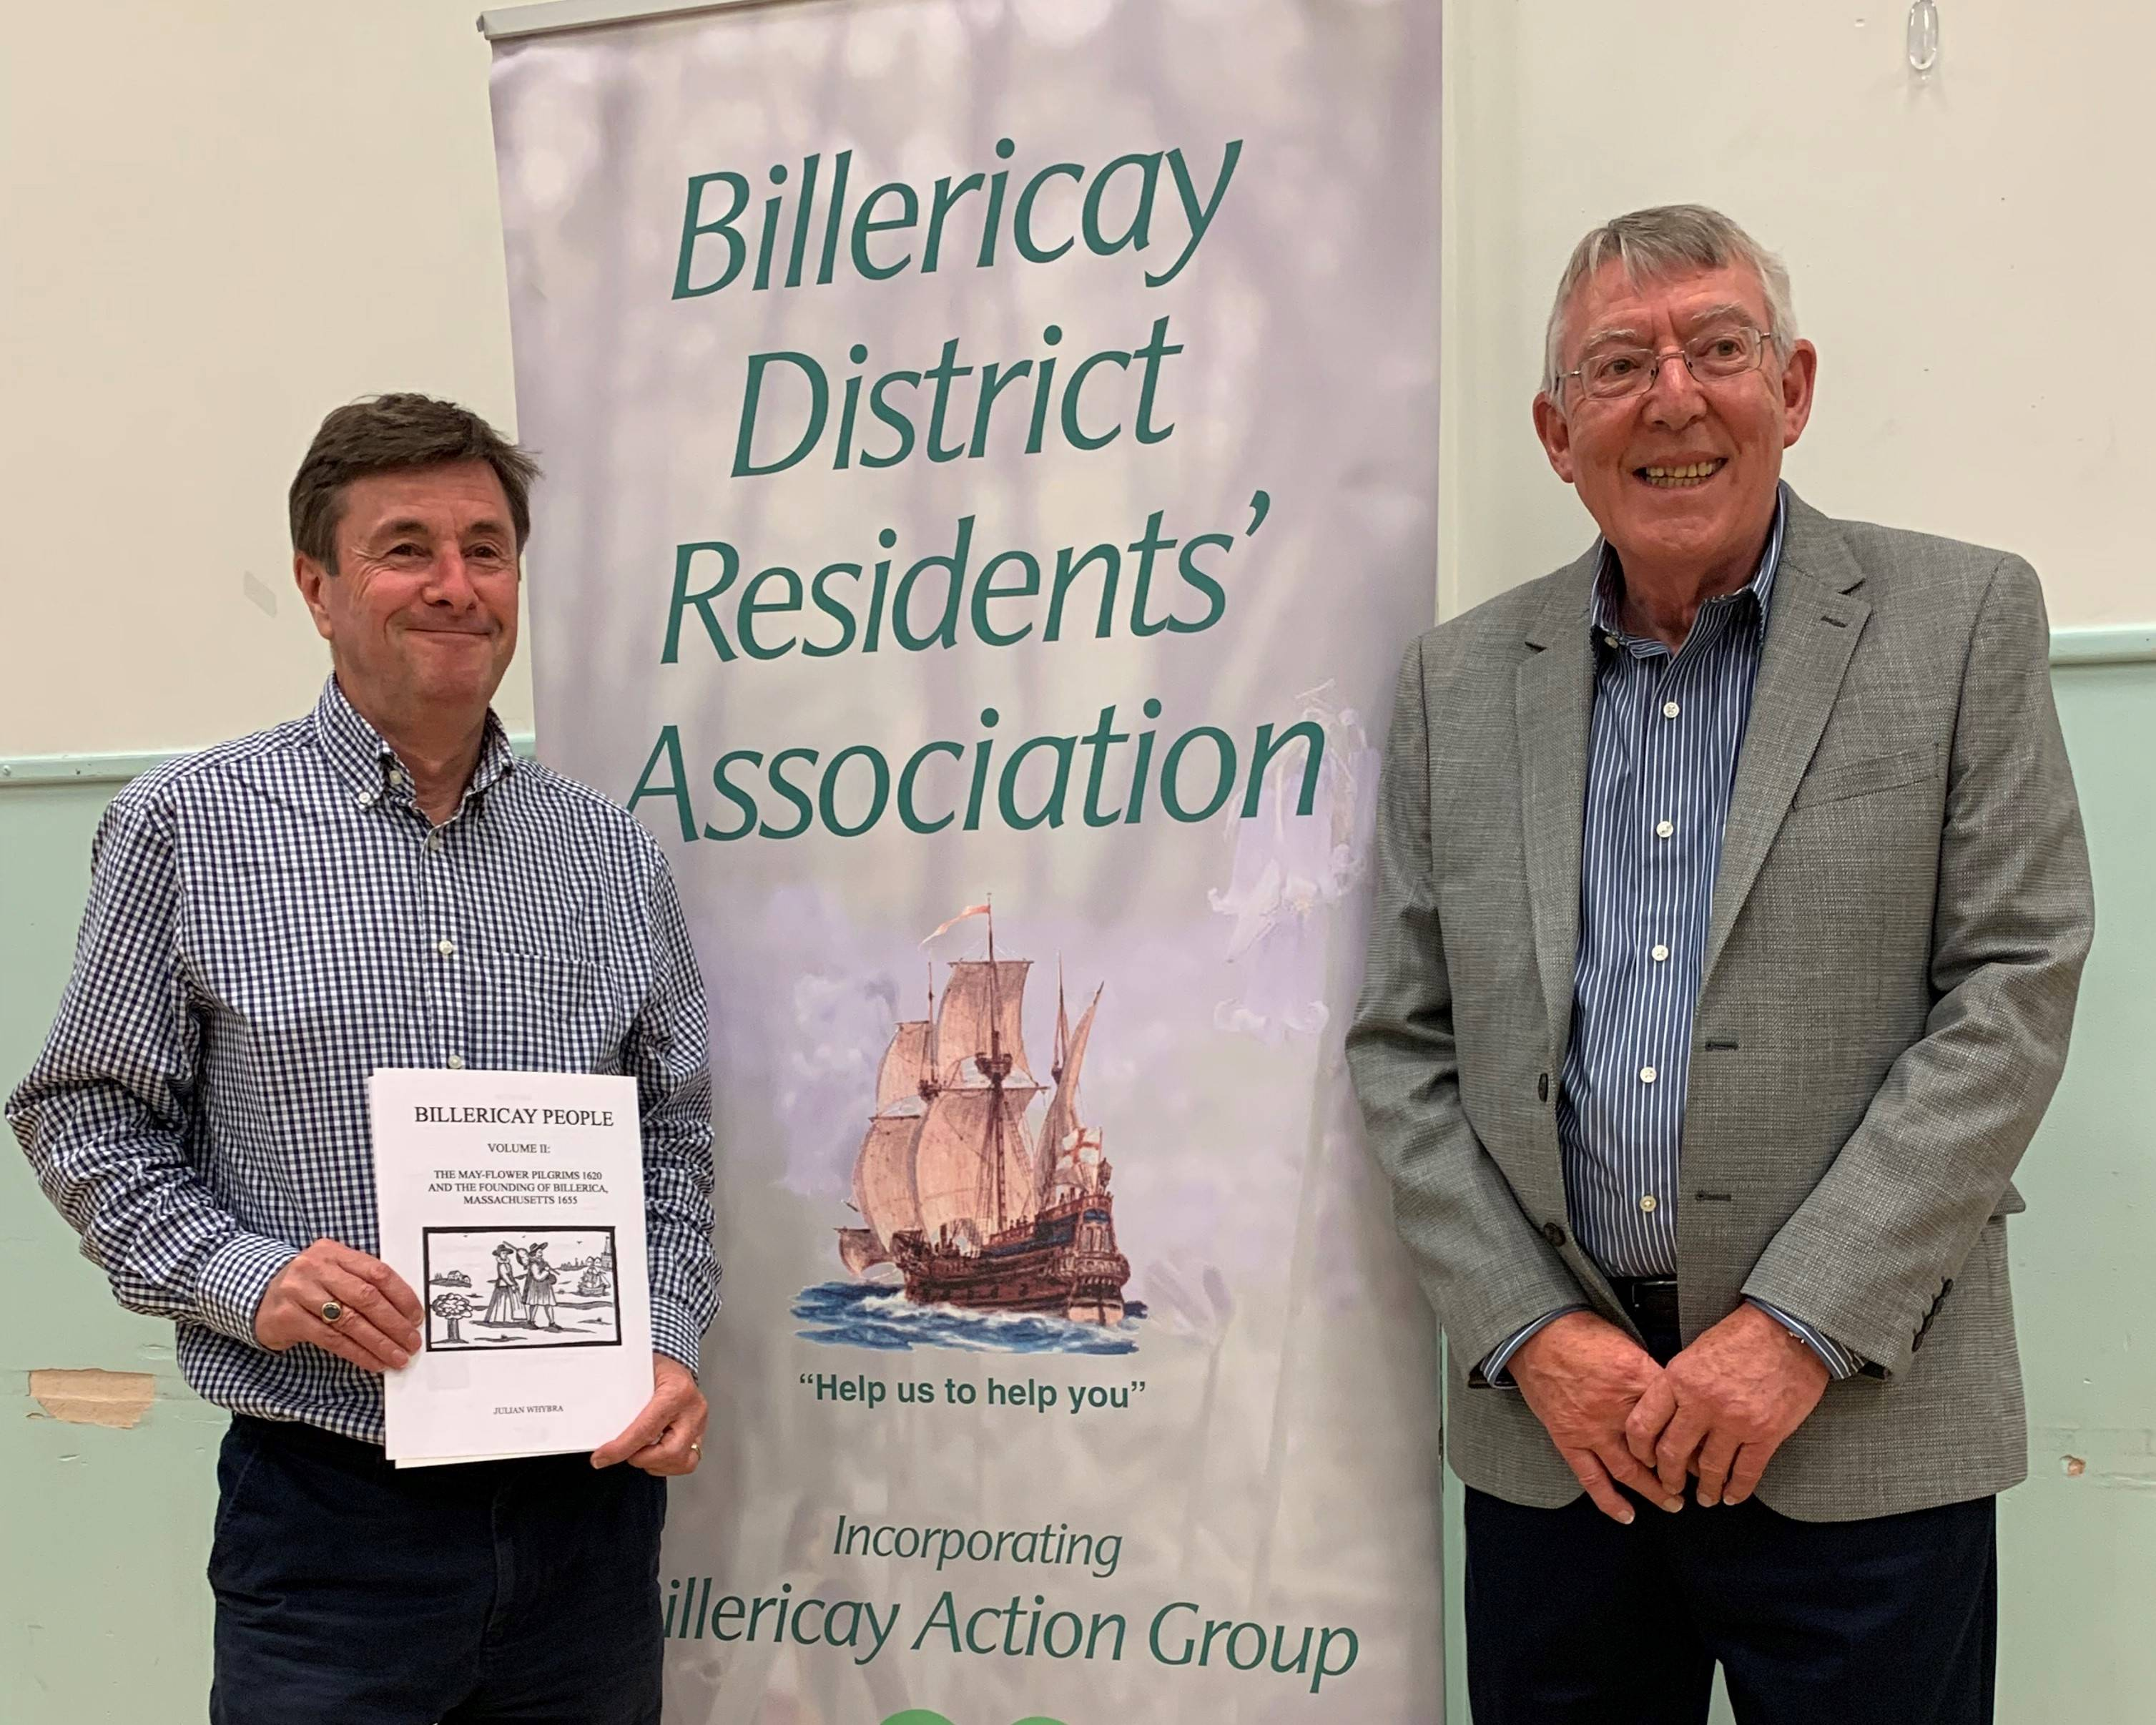 News from the 93rd AGM of BDRA